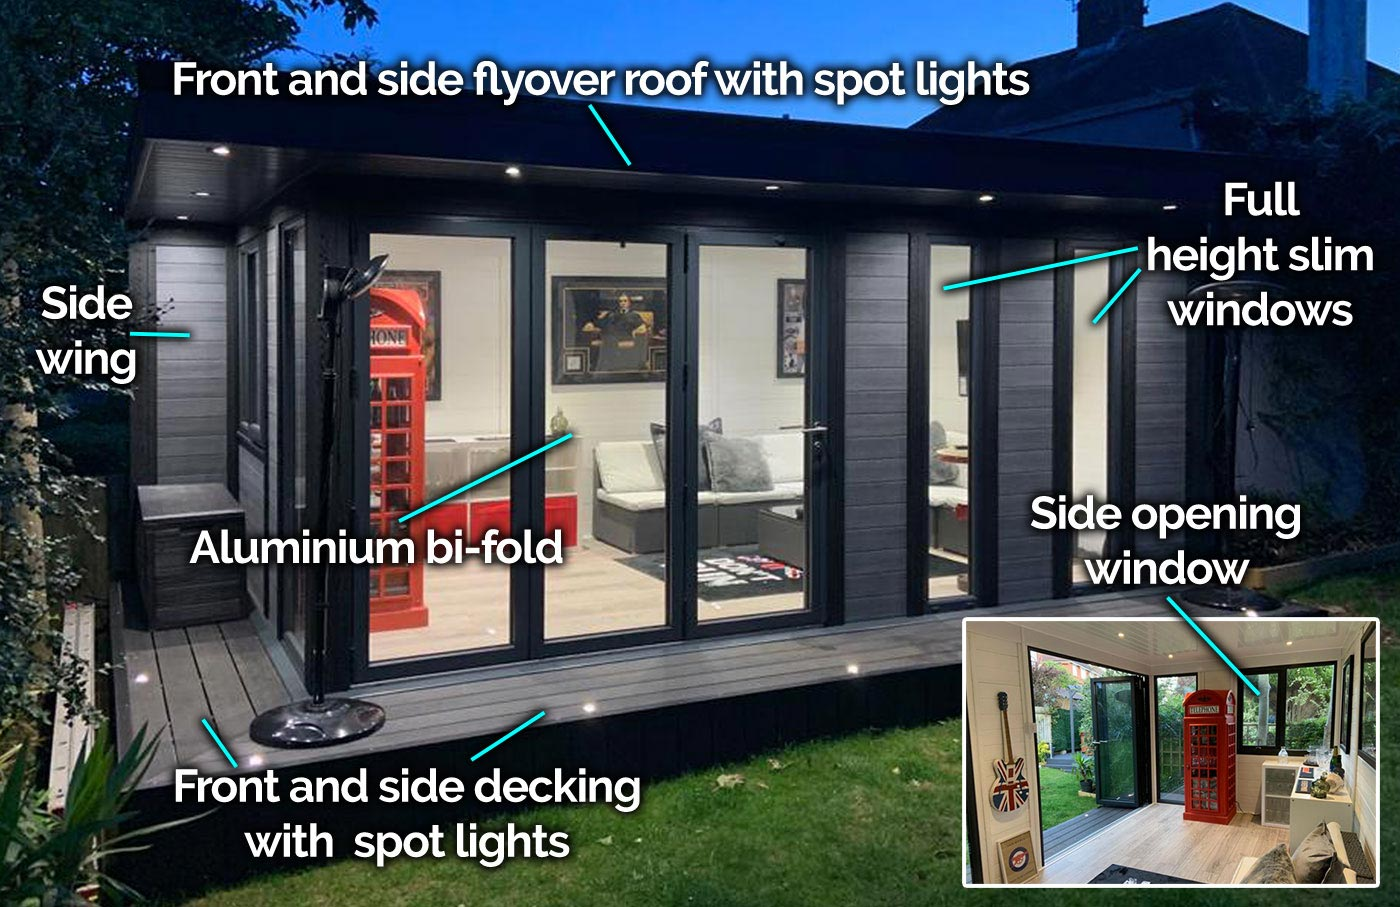 garden room with bi-fold door full height windows